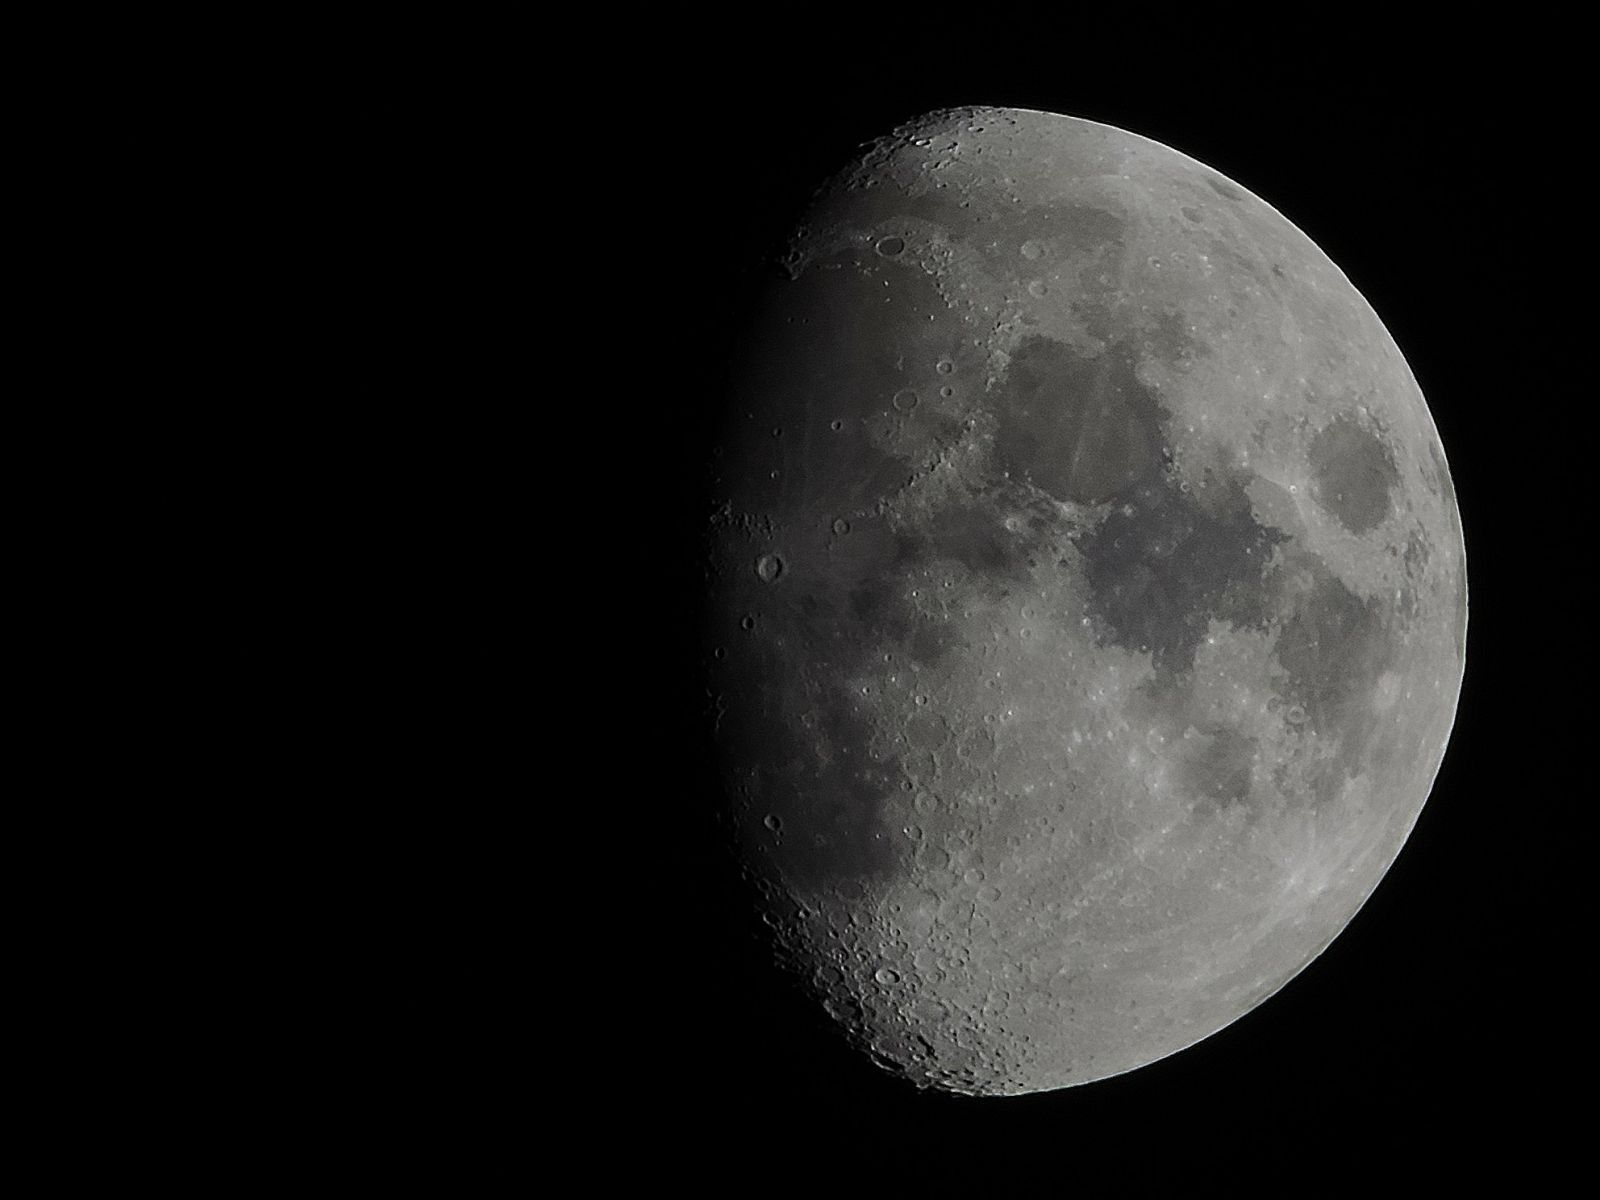 Stacked Moon Picture 9 Feb 2014